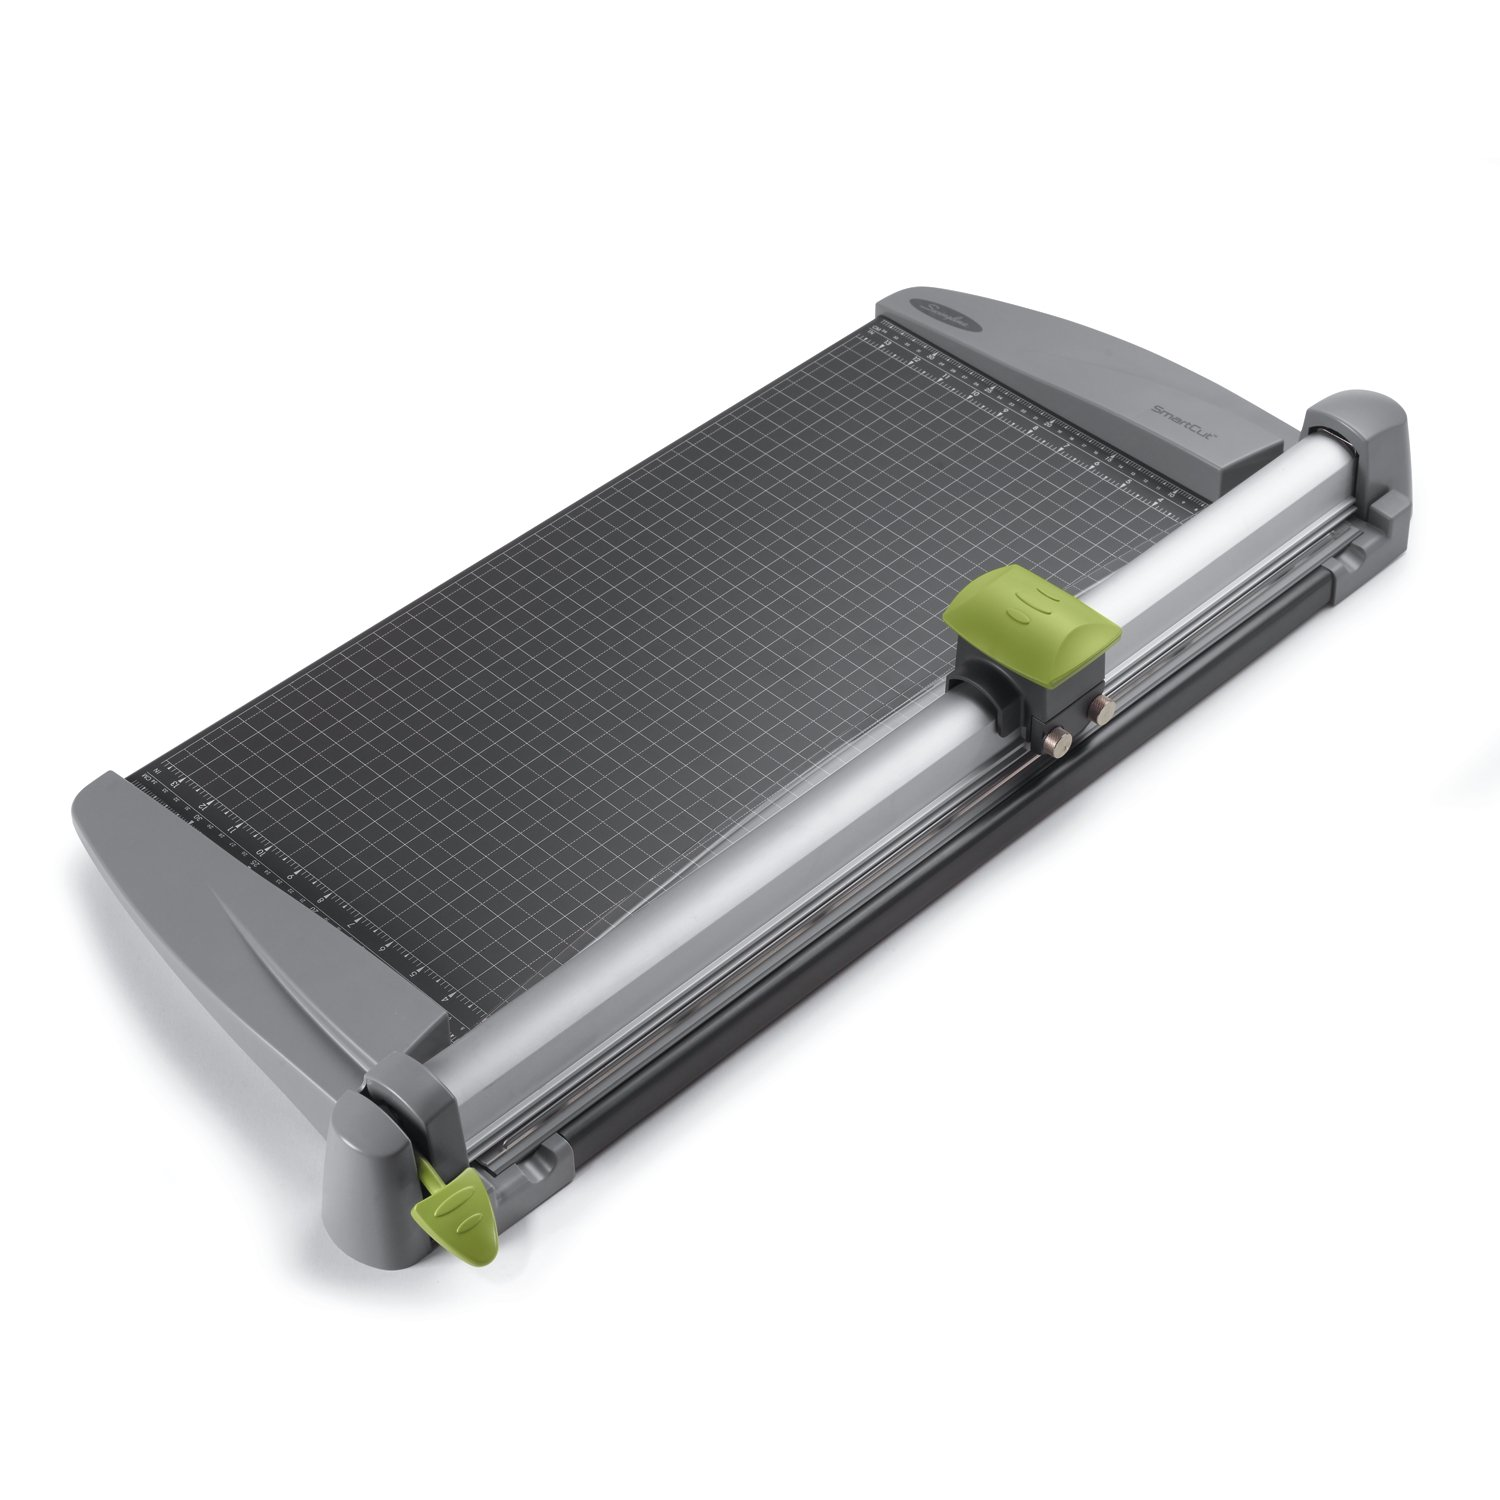 Swingline Paper Trimmer / Cutter, Rotary, Commercial, Heavy Duty, 24'' Cut Length, 30 Sheet Capacity, SmartCut (9624)